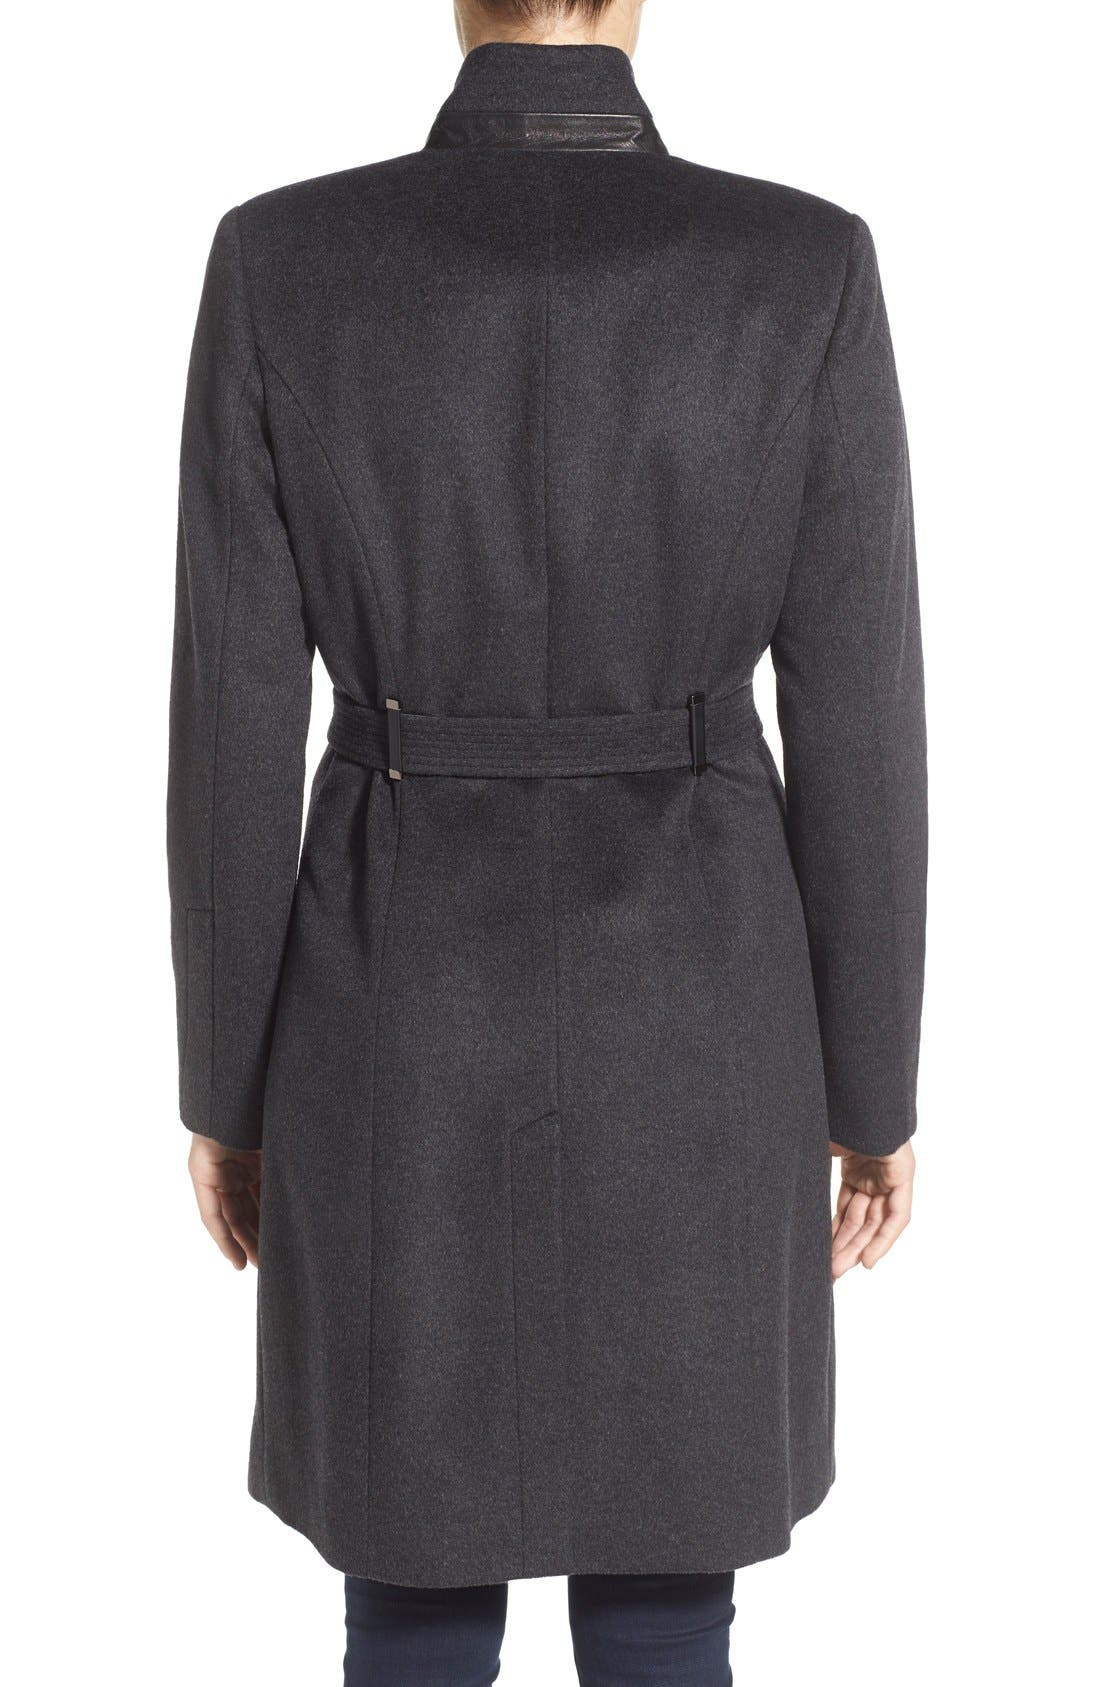 Badgley Mischka 'Ivana' Long Belted Inverted Collar Coat,                             Alternate thumbnail 5, color,                             020